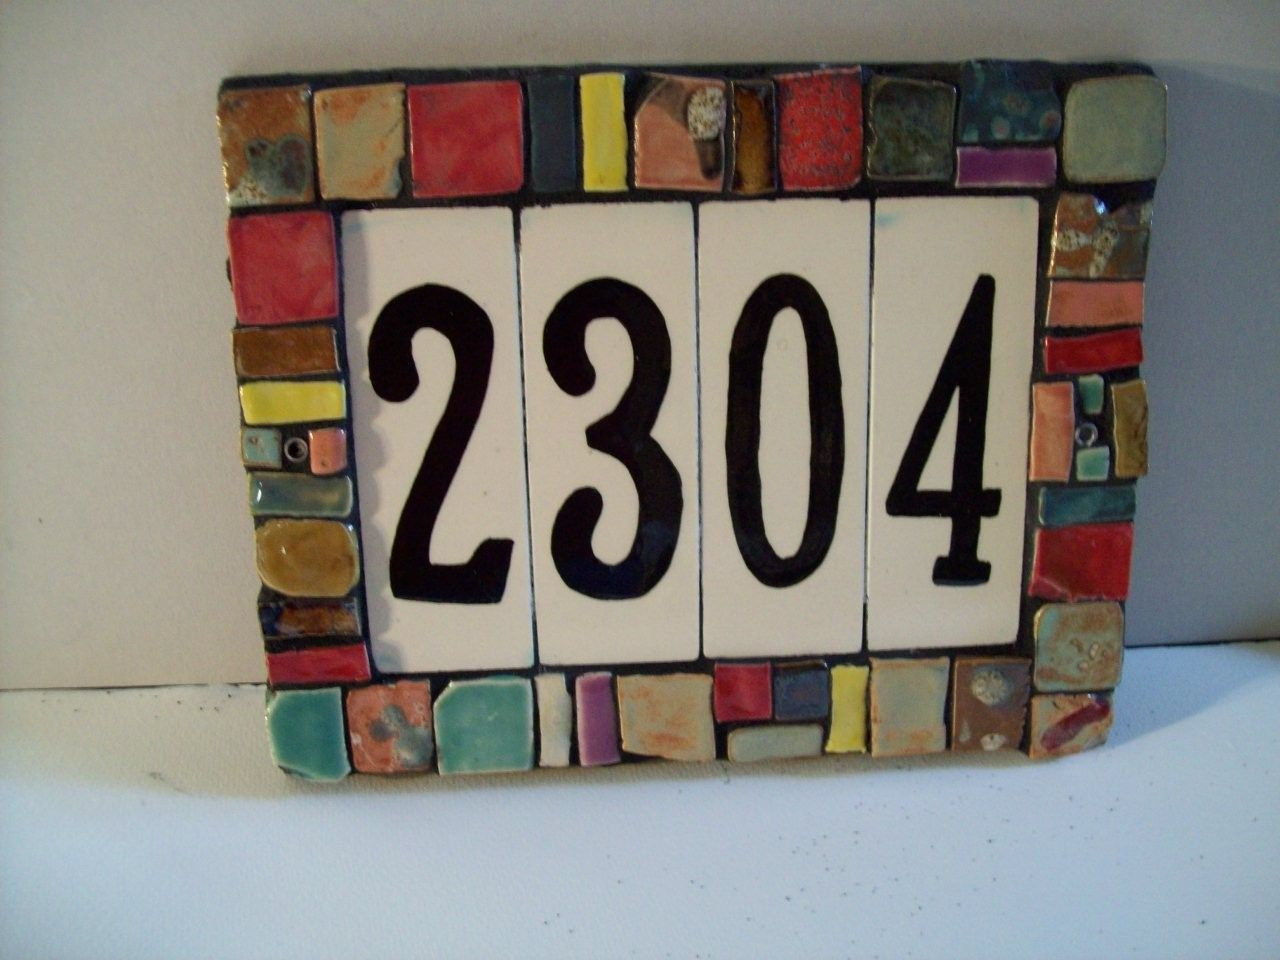 Handmade Ceramic Porcelain House Number Tiles Backspashes Ceramic House Numbers Tile House Numbers House Numbers